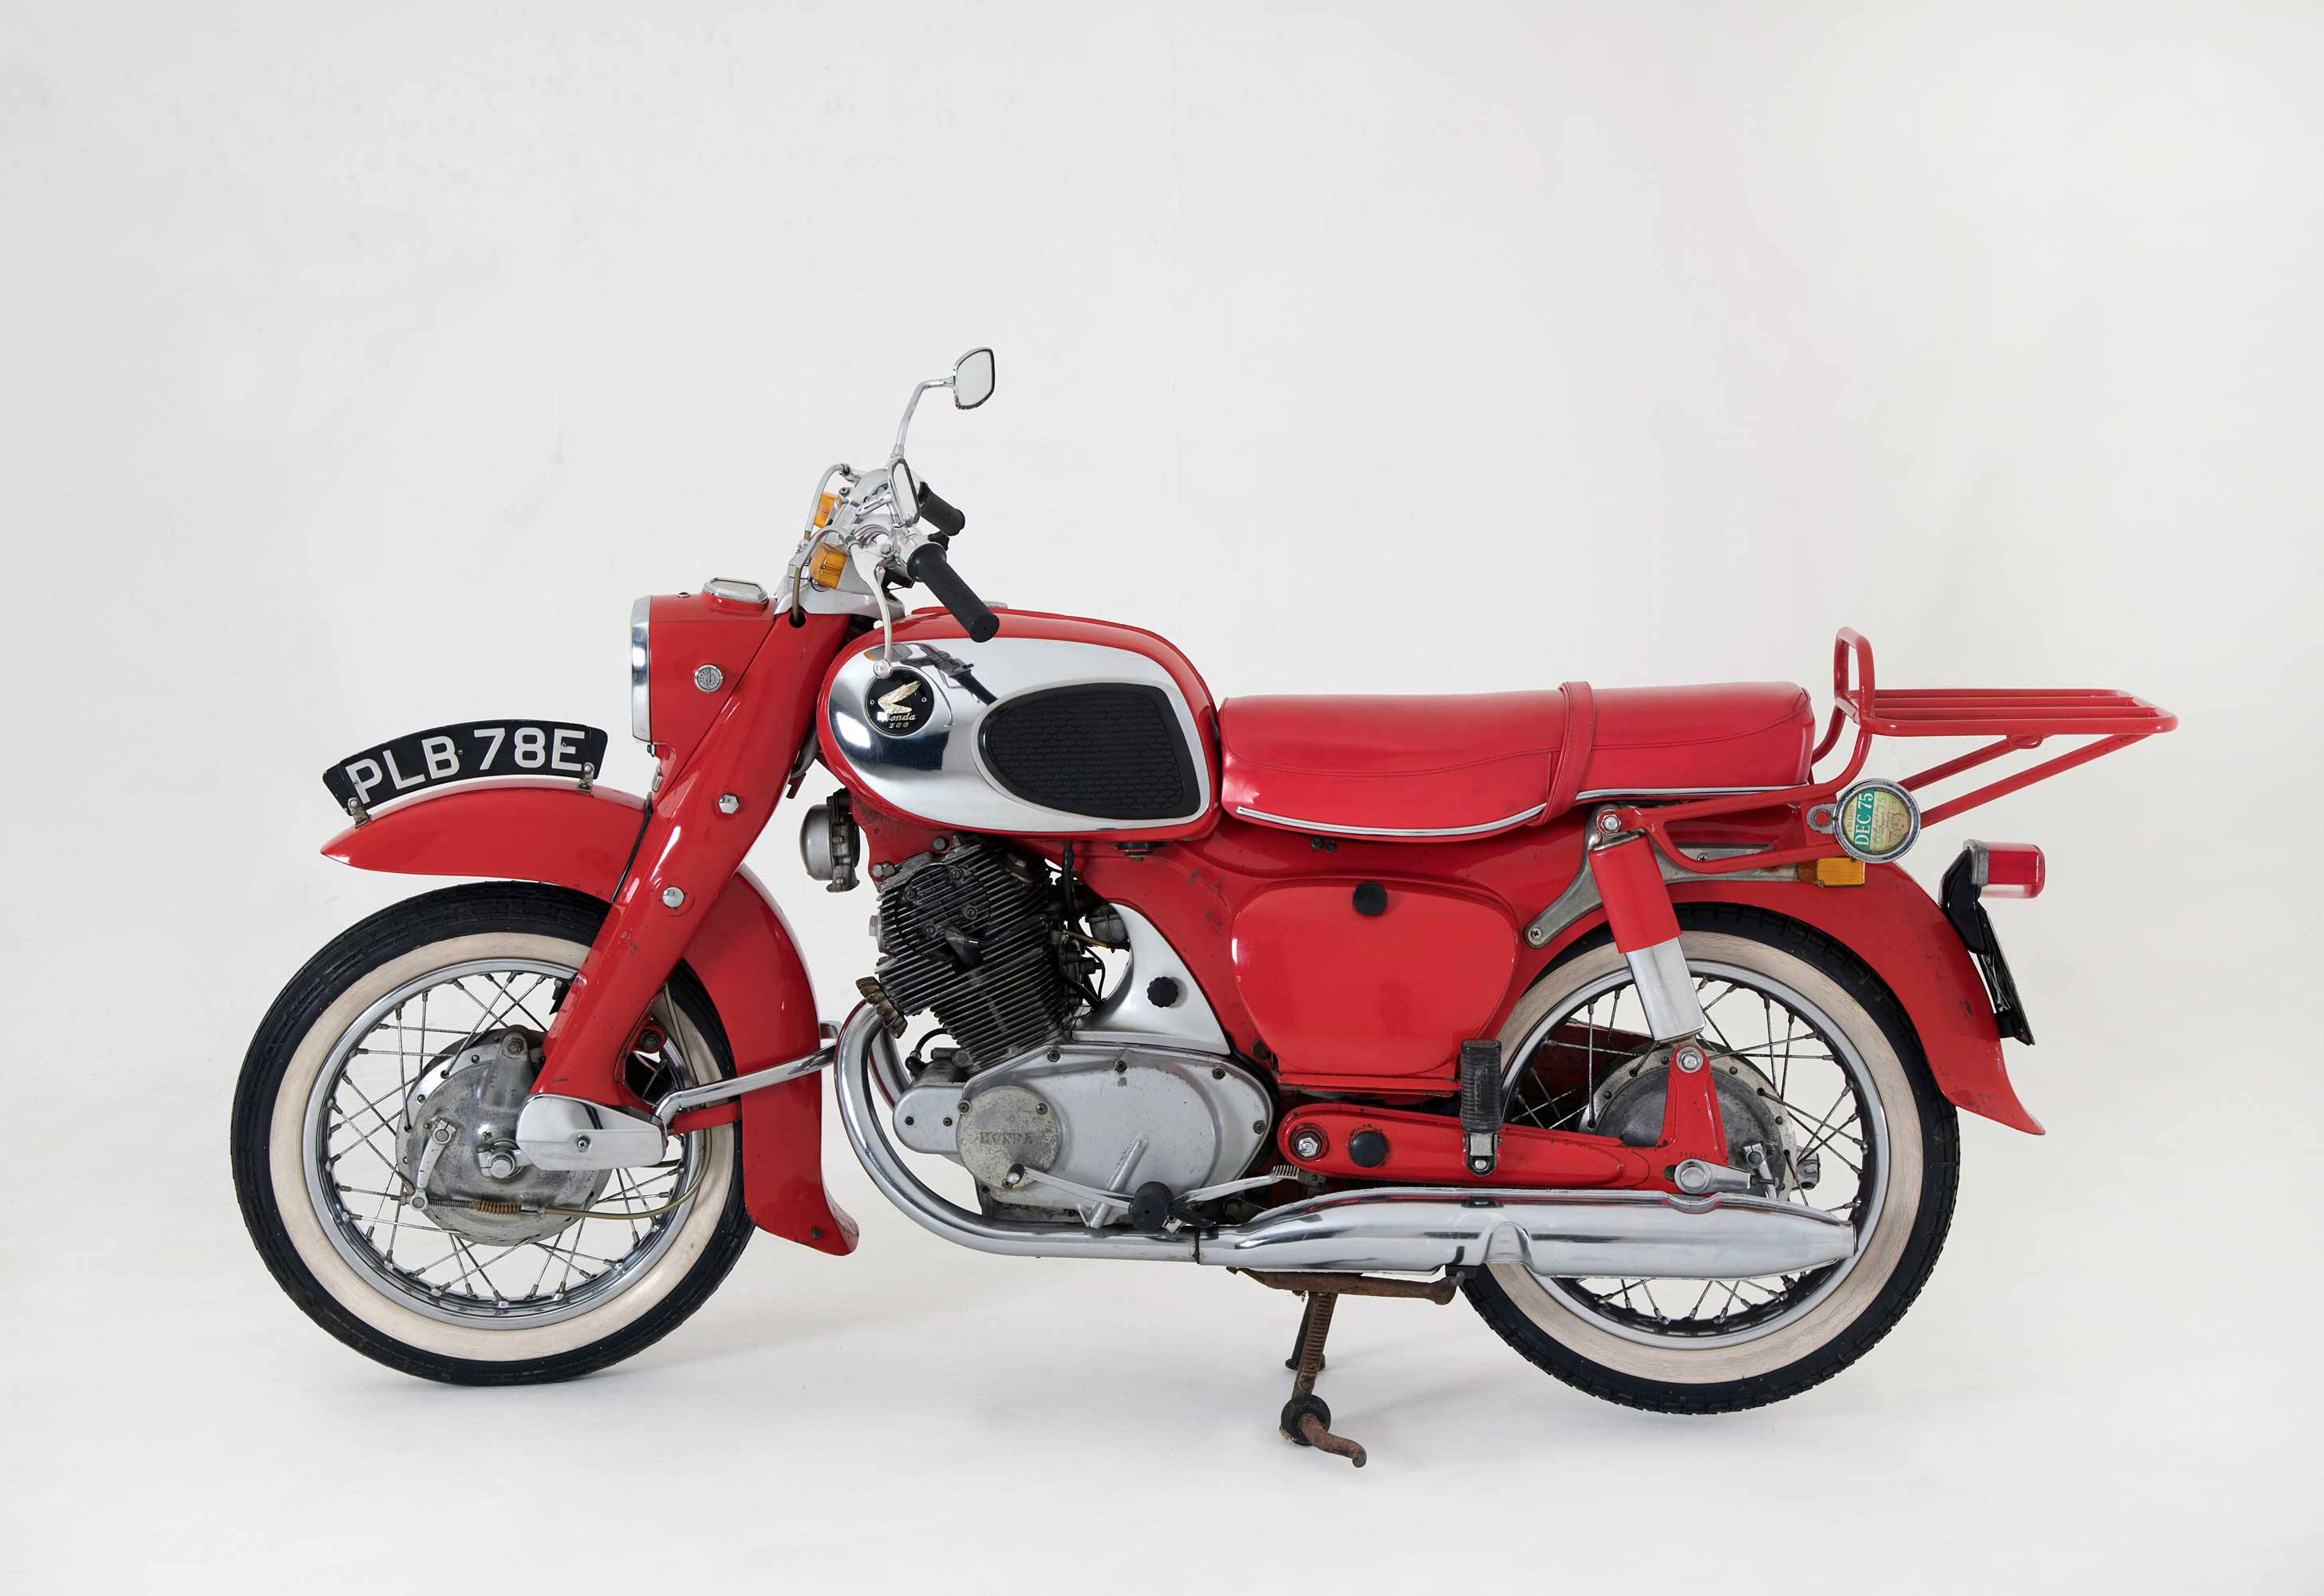 1967 Honda C77 Dream